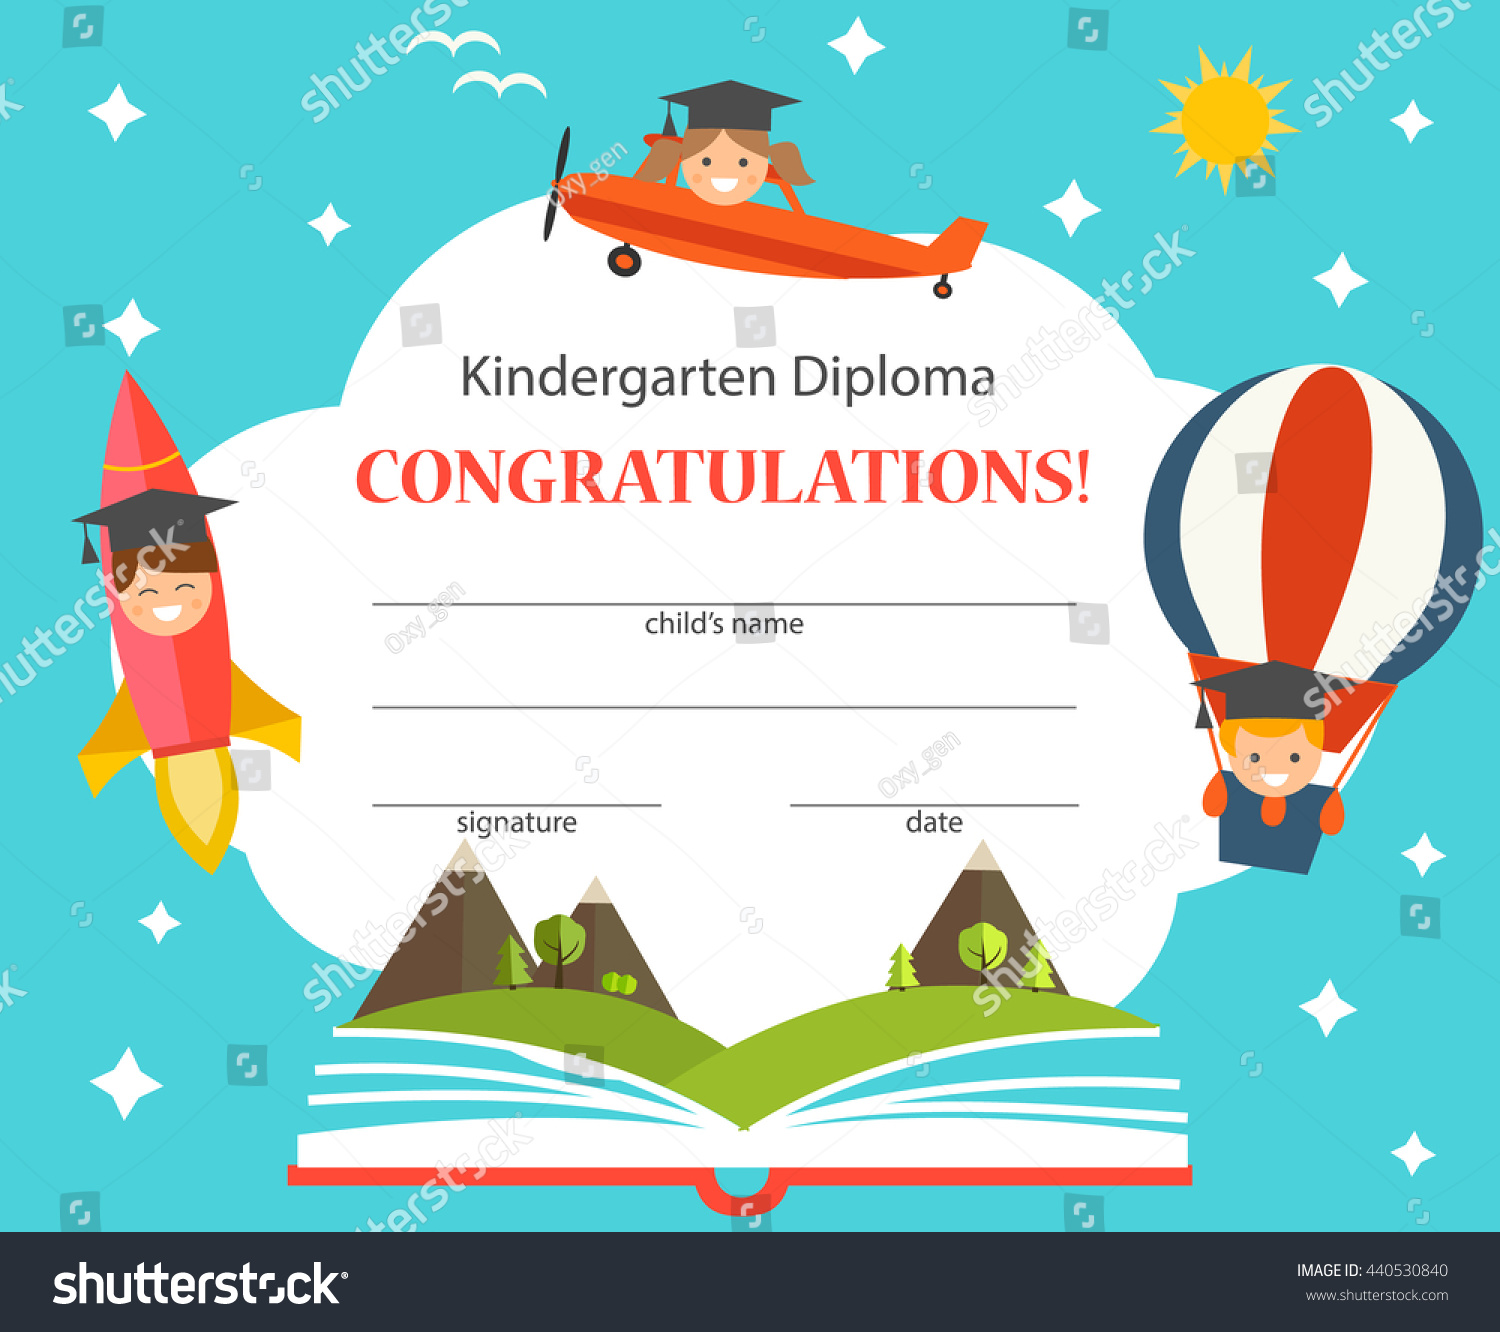 royalty free kindergarten diploma with opened book 440530840 stock